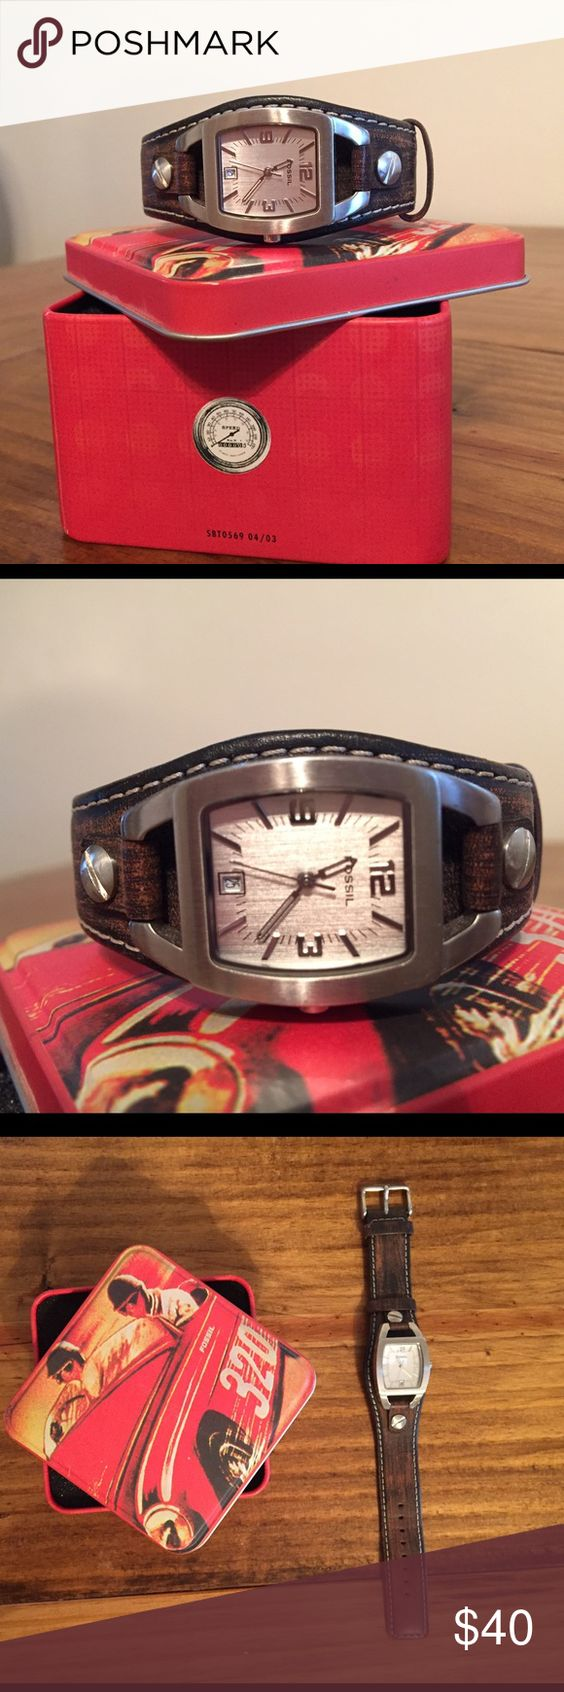 Fossil Watch Like new Women's Fossil Watch. Comes in original tin. Needs battery. Fossil Accessories Watches